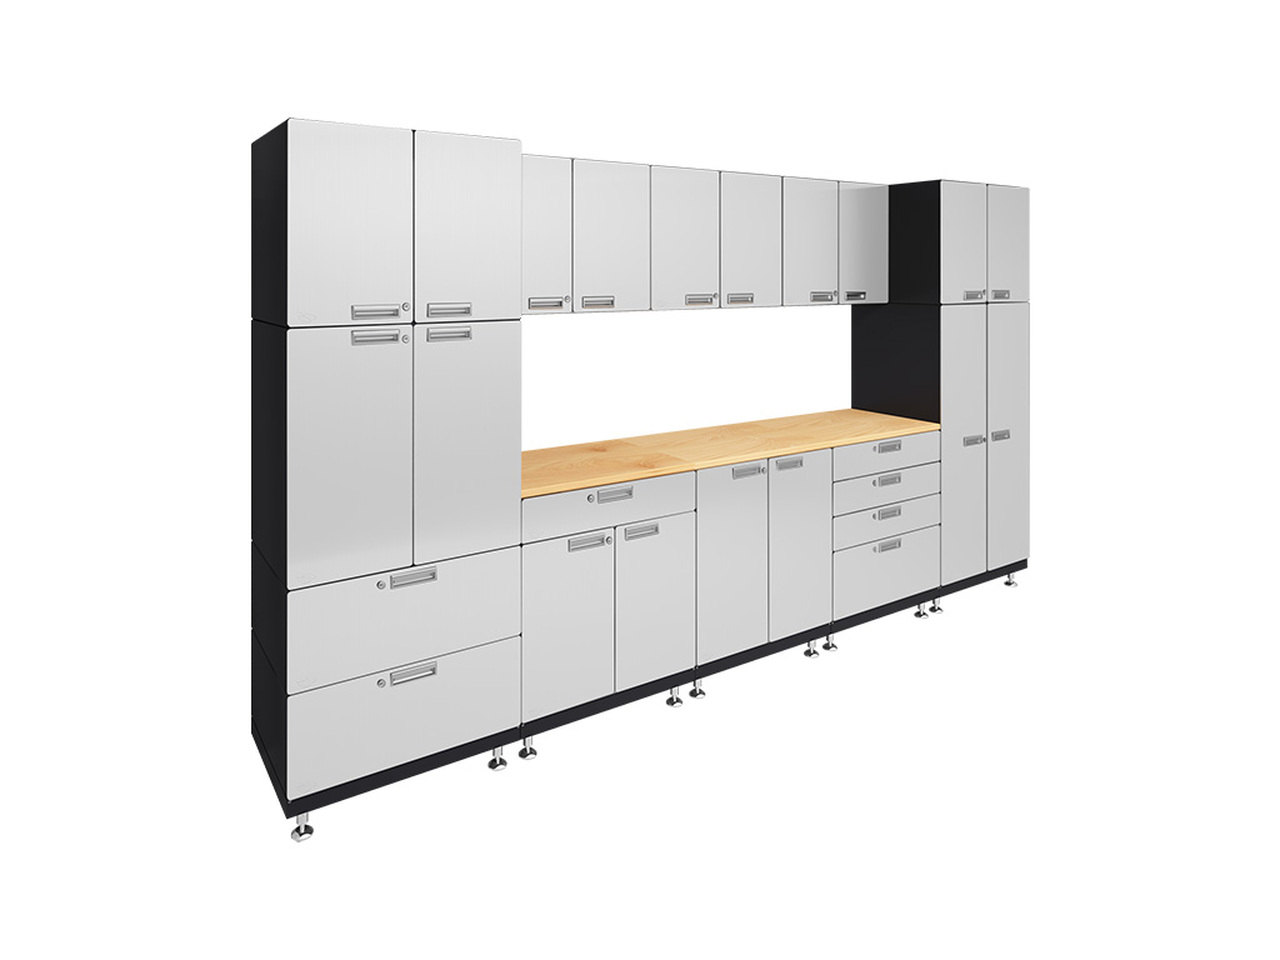 "Kit 1 – Double Work Center Garage Cabinet System | 24""D x 150""W x 84""H"